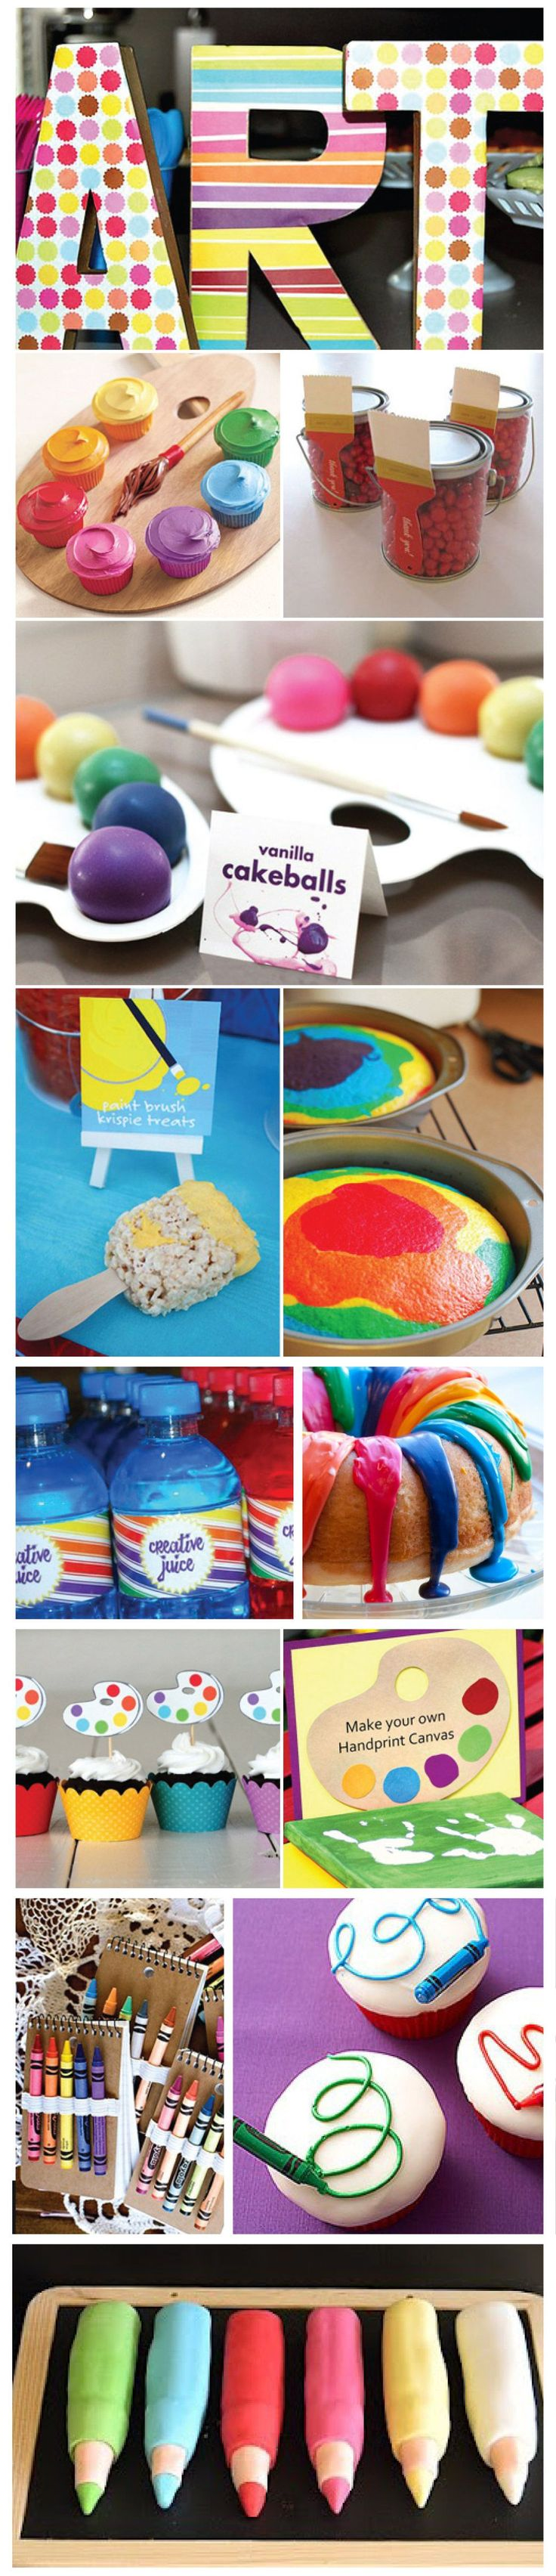 Arts and crafts party ideas - Arts And Crafts Party Ideas 54